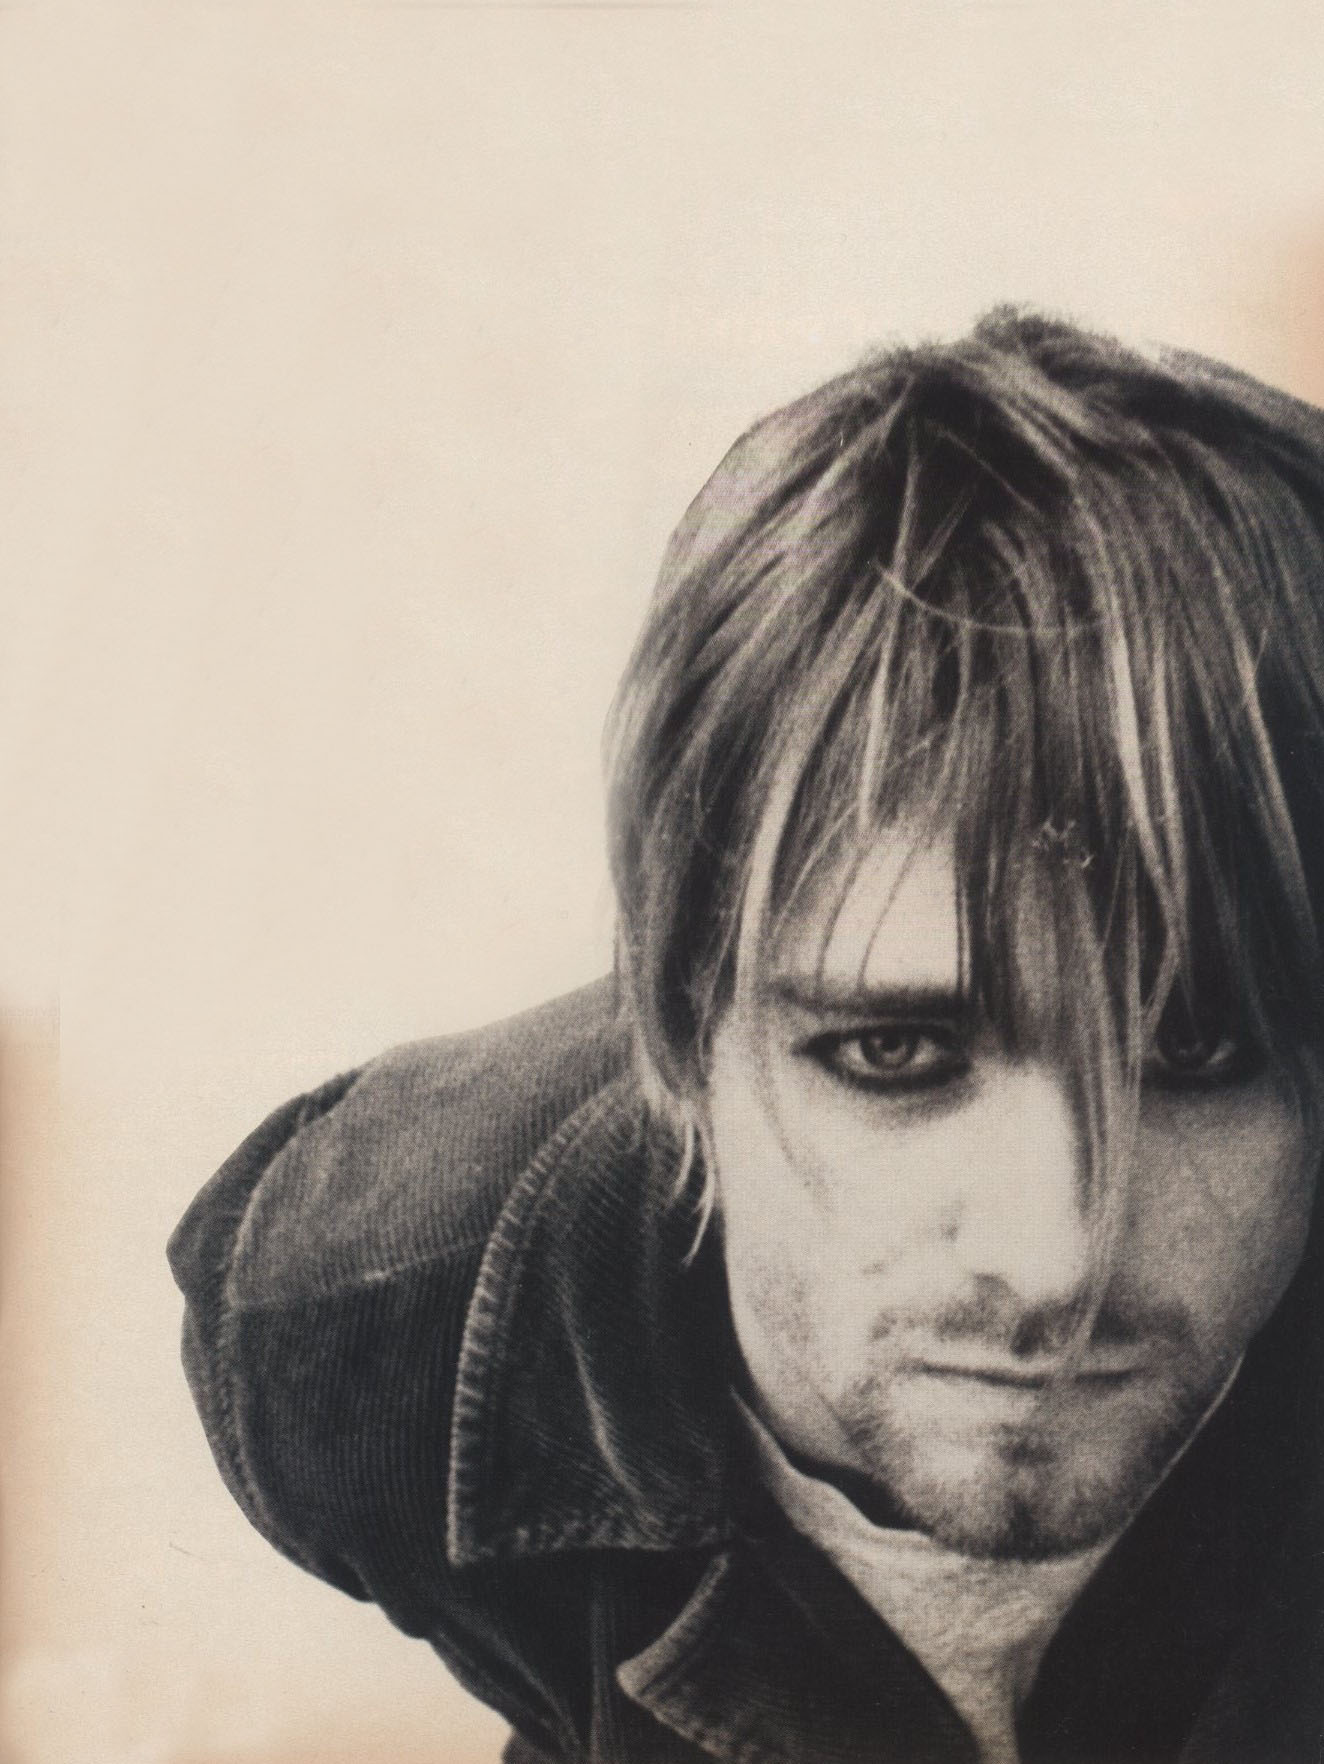 KURT COBAIN PHOTOGRAPHY MARTYN GOODACRE i-D THE ROCK'N'ROLL ISSUE NO.129 JUNE 1994